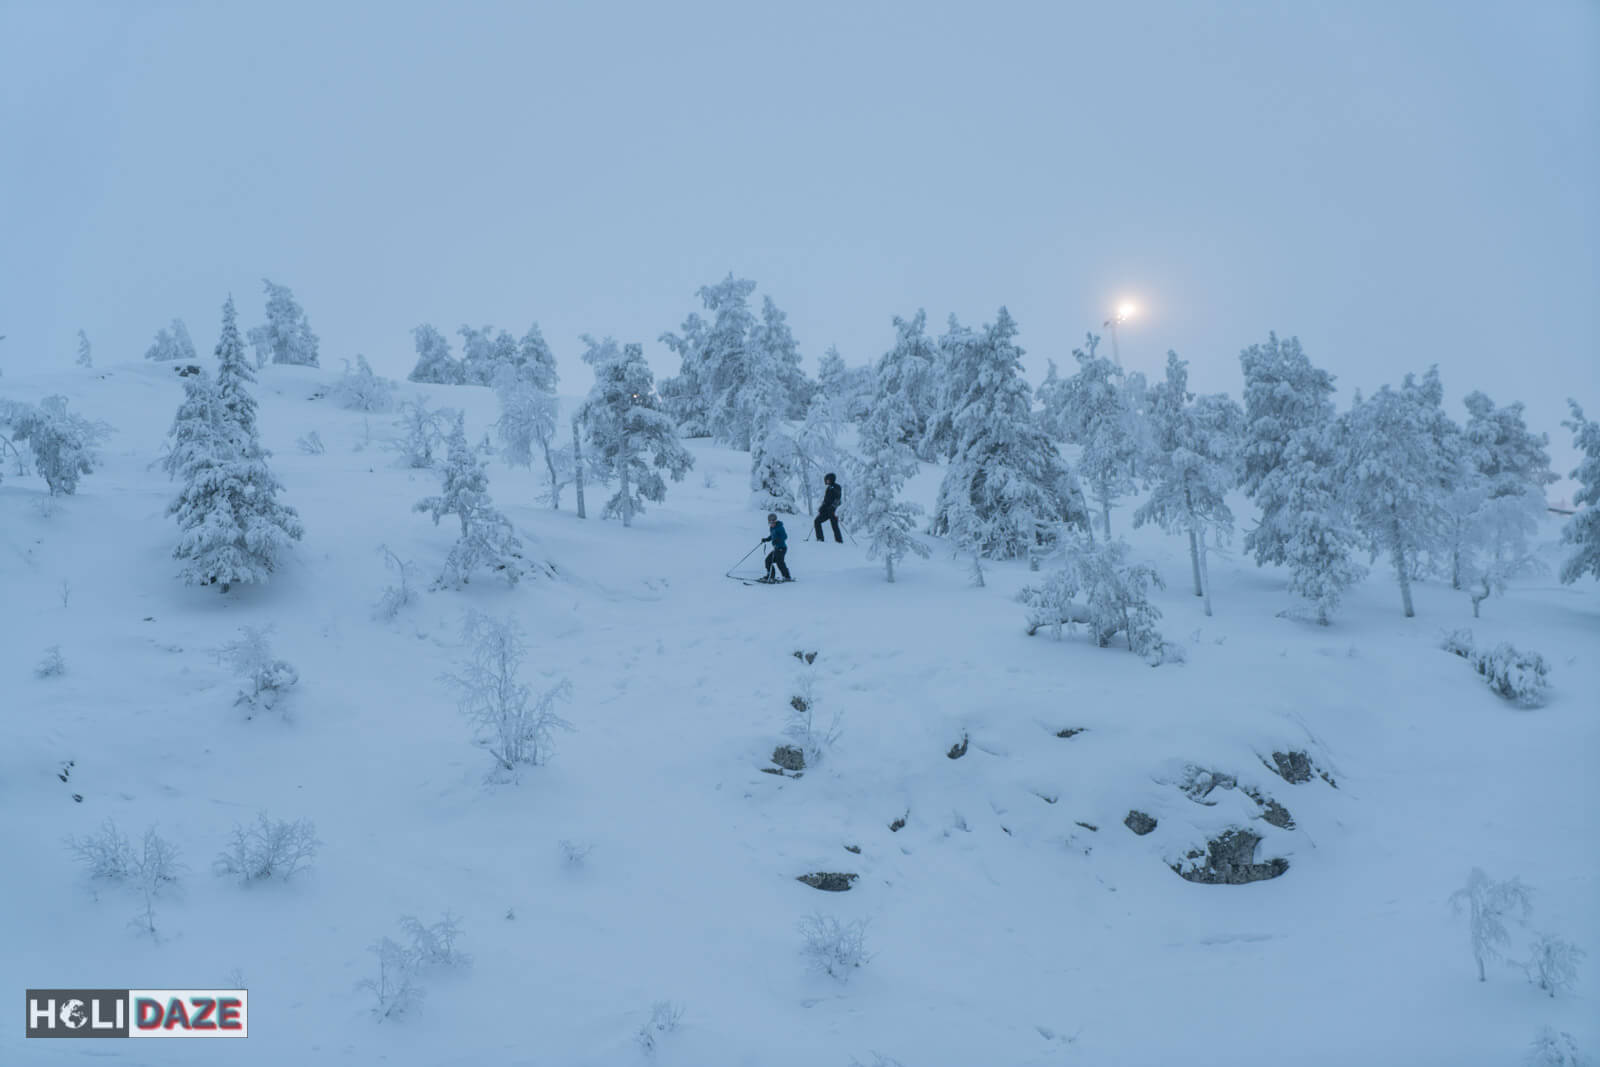 Skiing in Lapland, the far northern part Finland up in the Arctic Circle, was an experience that proved travel is priceless